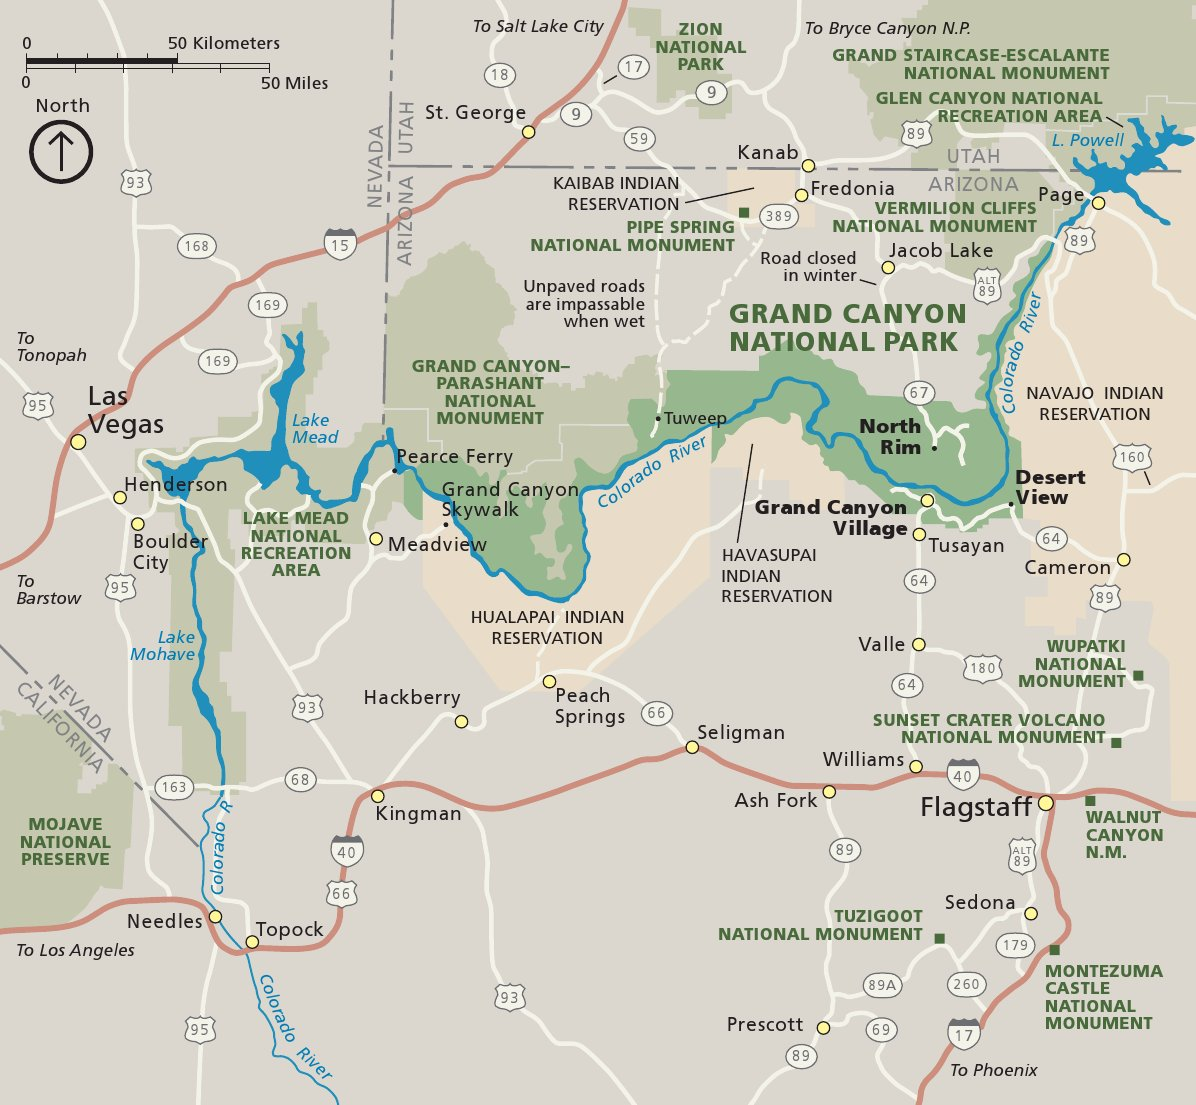 Super Grand Canyon Maps | NPMaps.com - just free maps, period. LU21